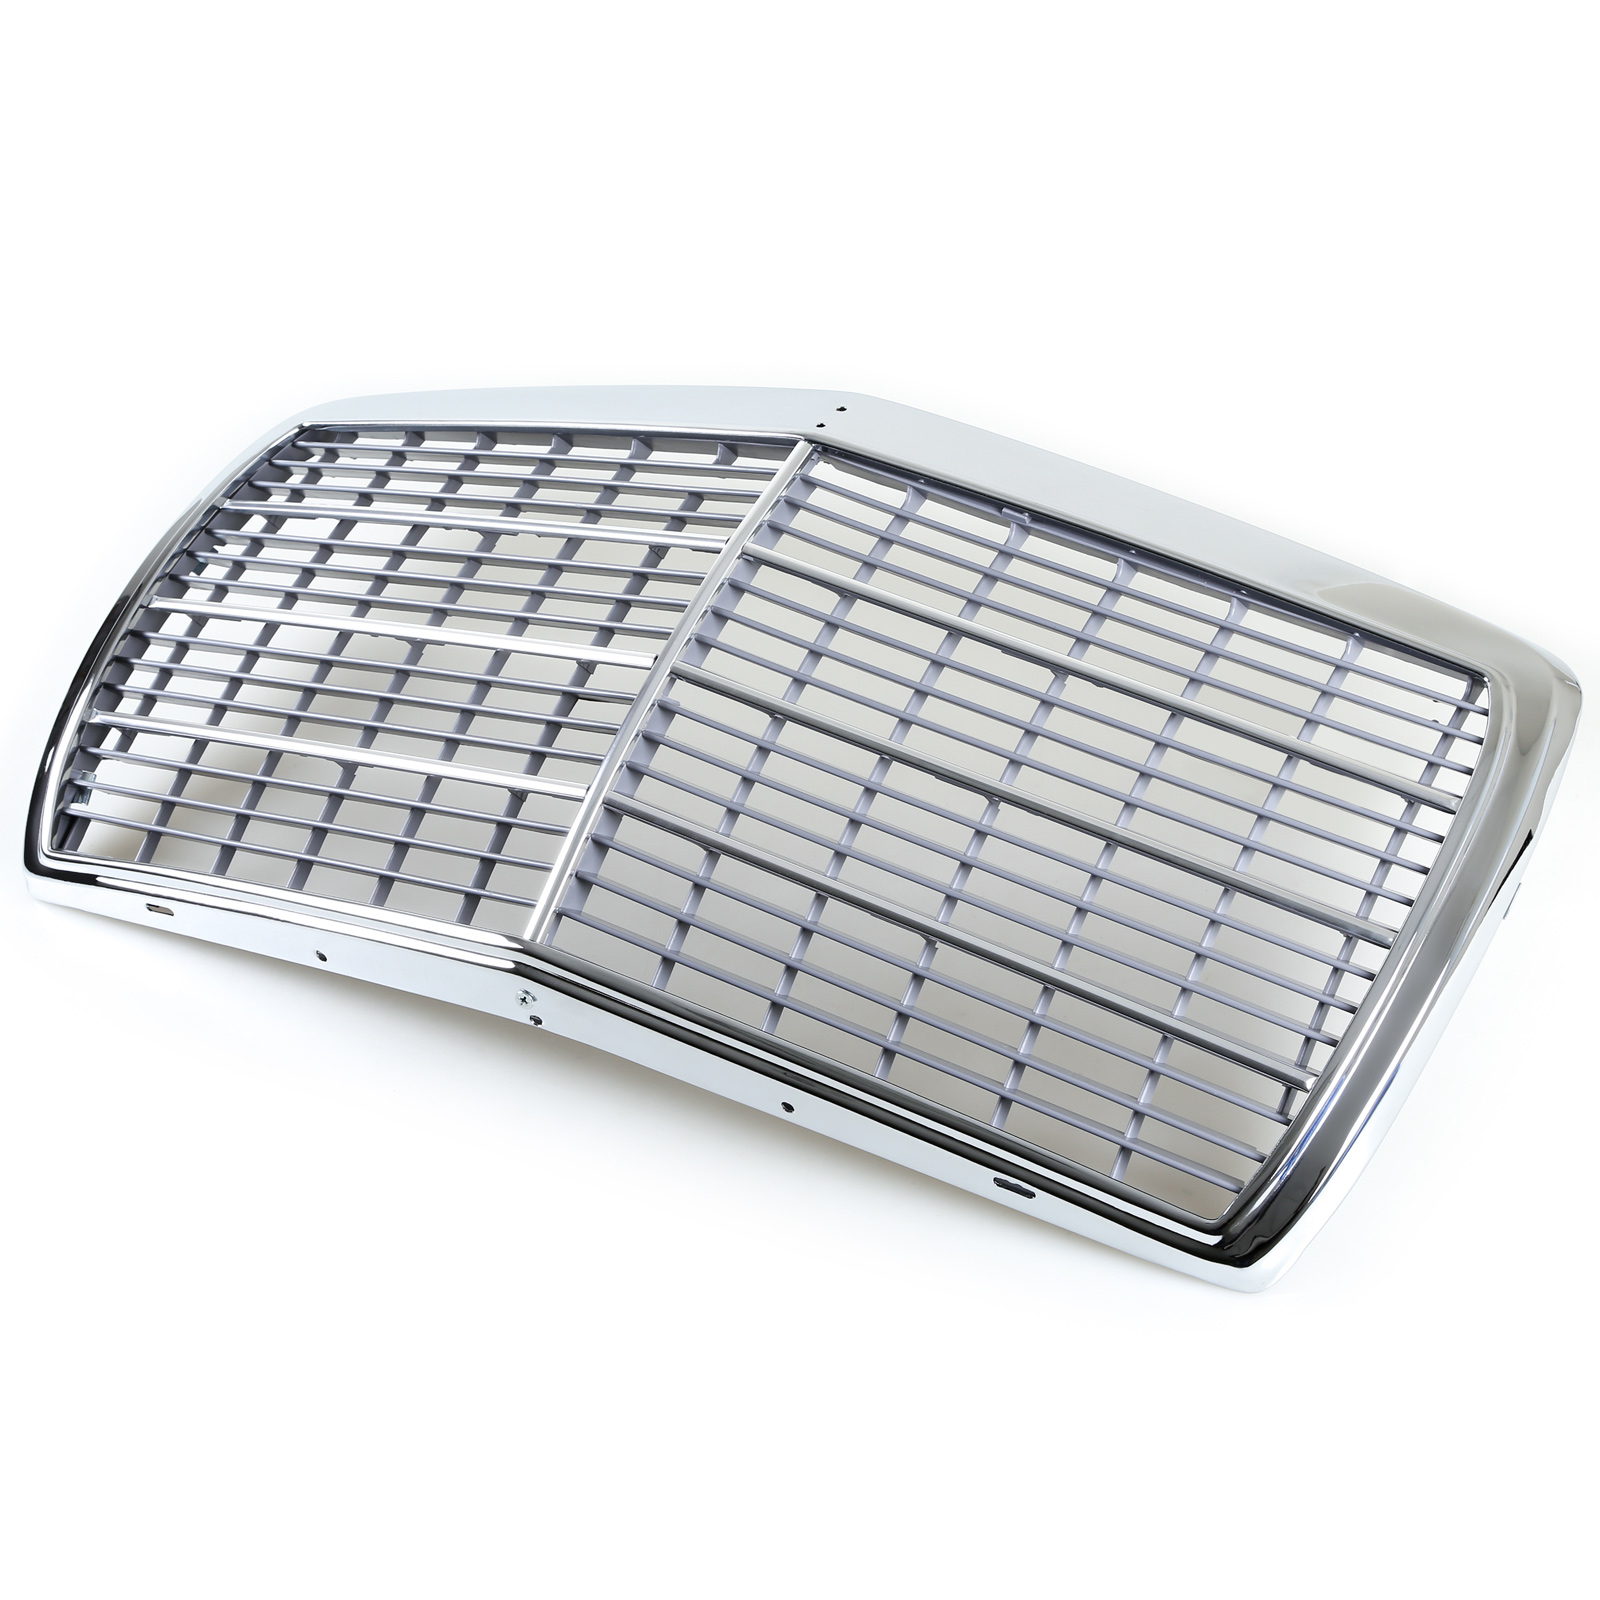 Chrome Frame + Mesh Front Grille For Mercedes W123 E-Class 230 280E 280CE 300D